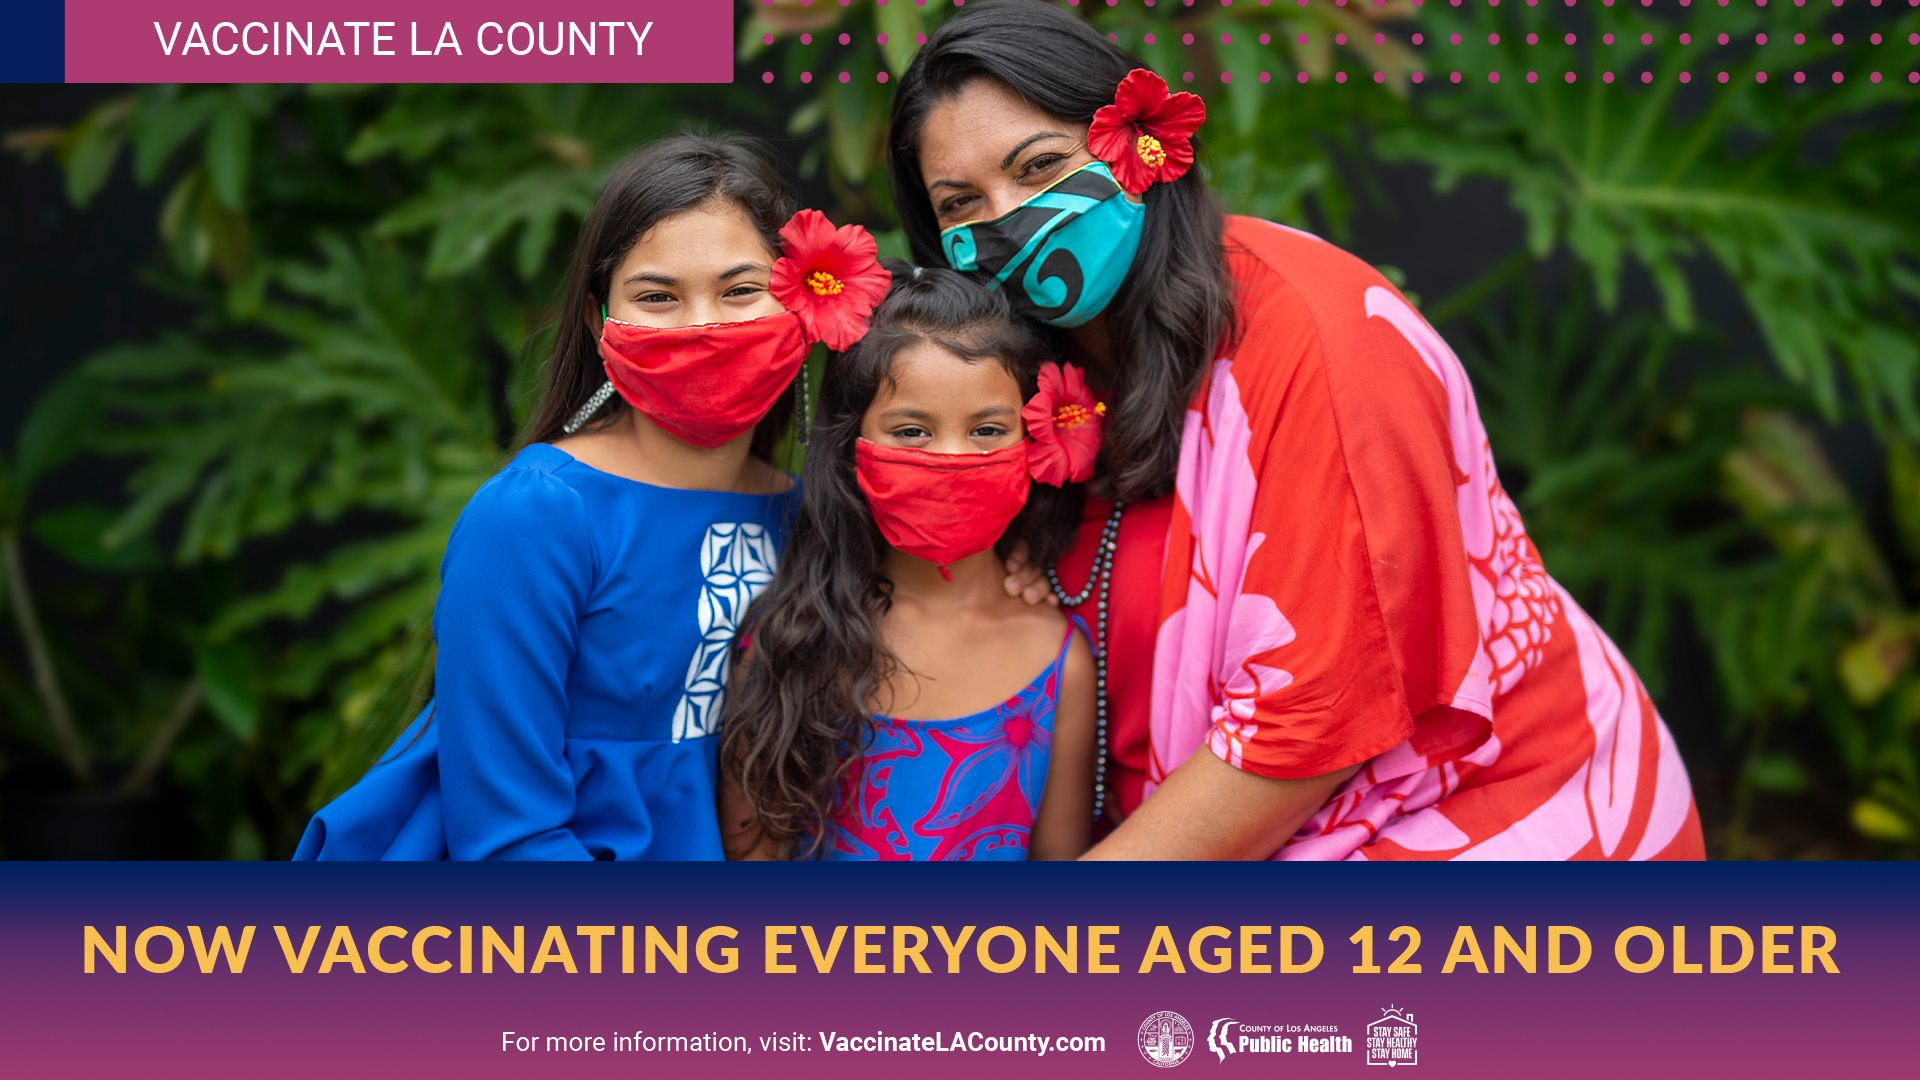 Now Vaccinating Everyone Aged 12 and Older